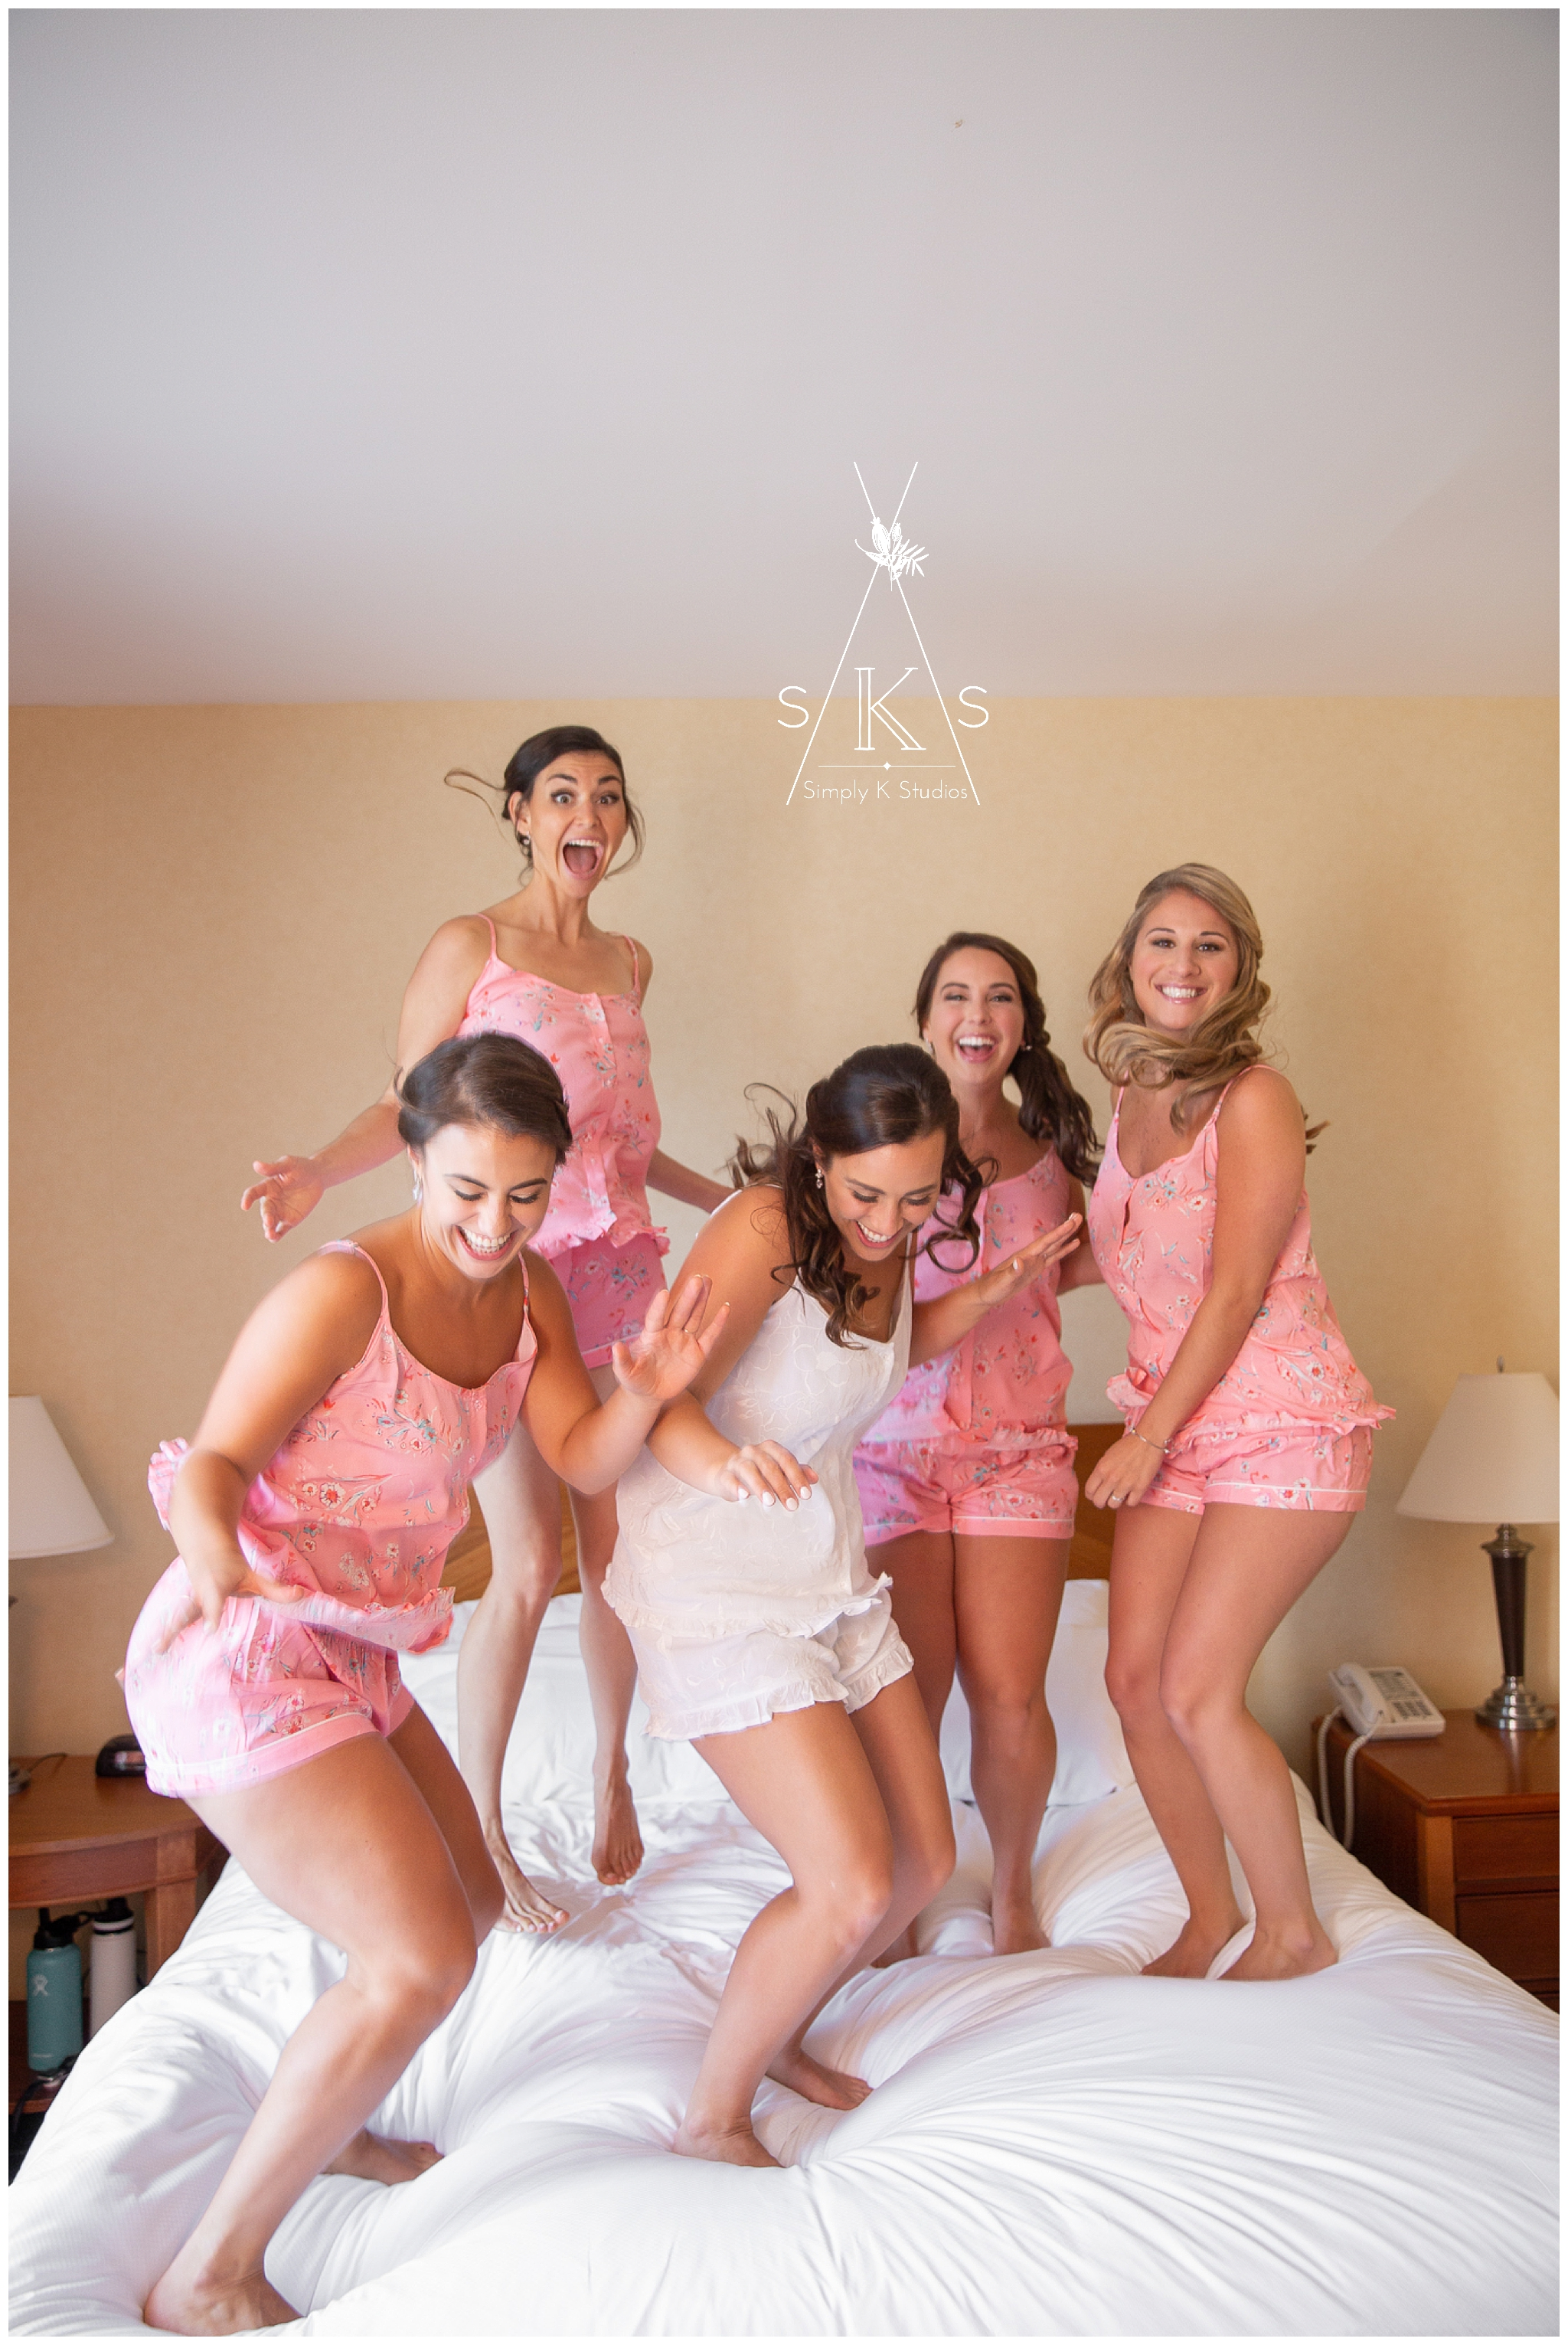 Bridesmaids jumping on a bed